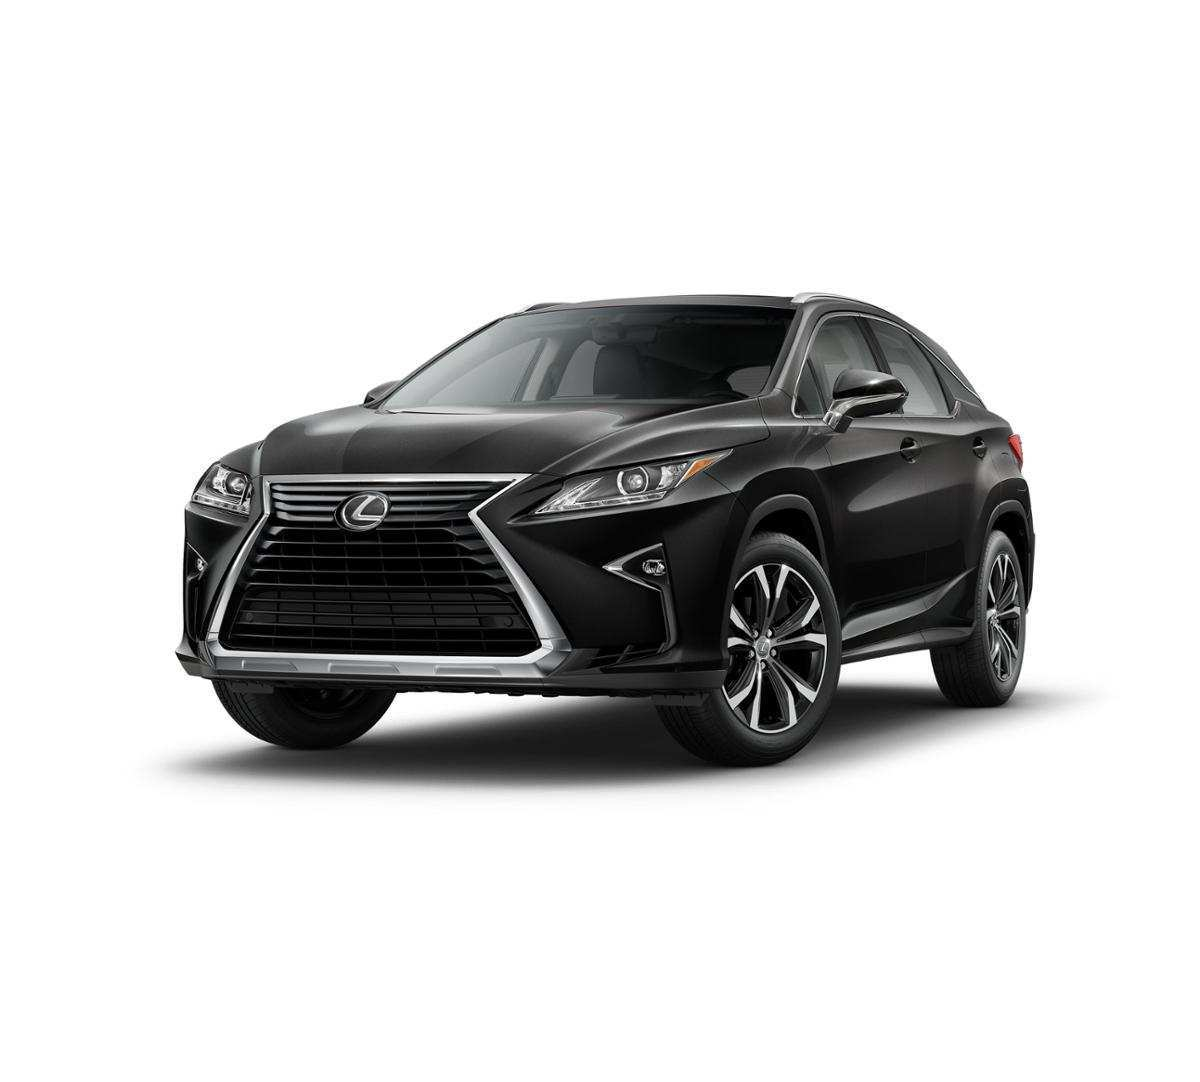 73 The The Lexus Rx 2018 Vs 2019 Spesification Images by The Lexus Rx 2018 Vs 2019 Spesification